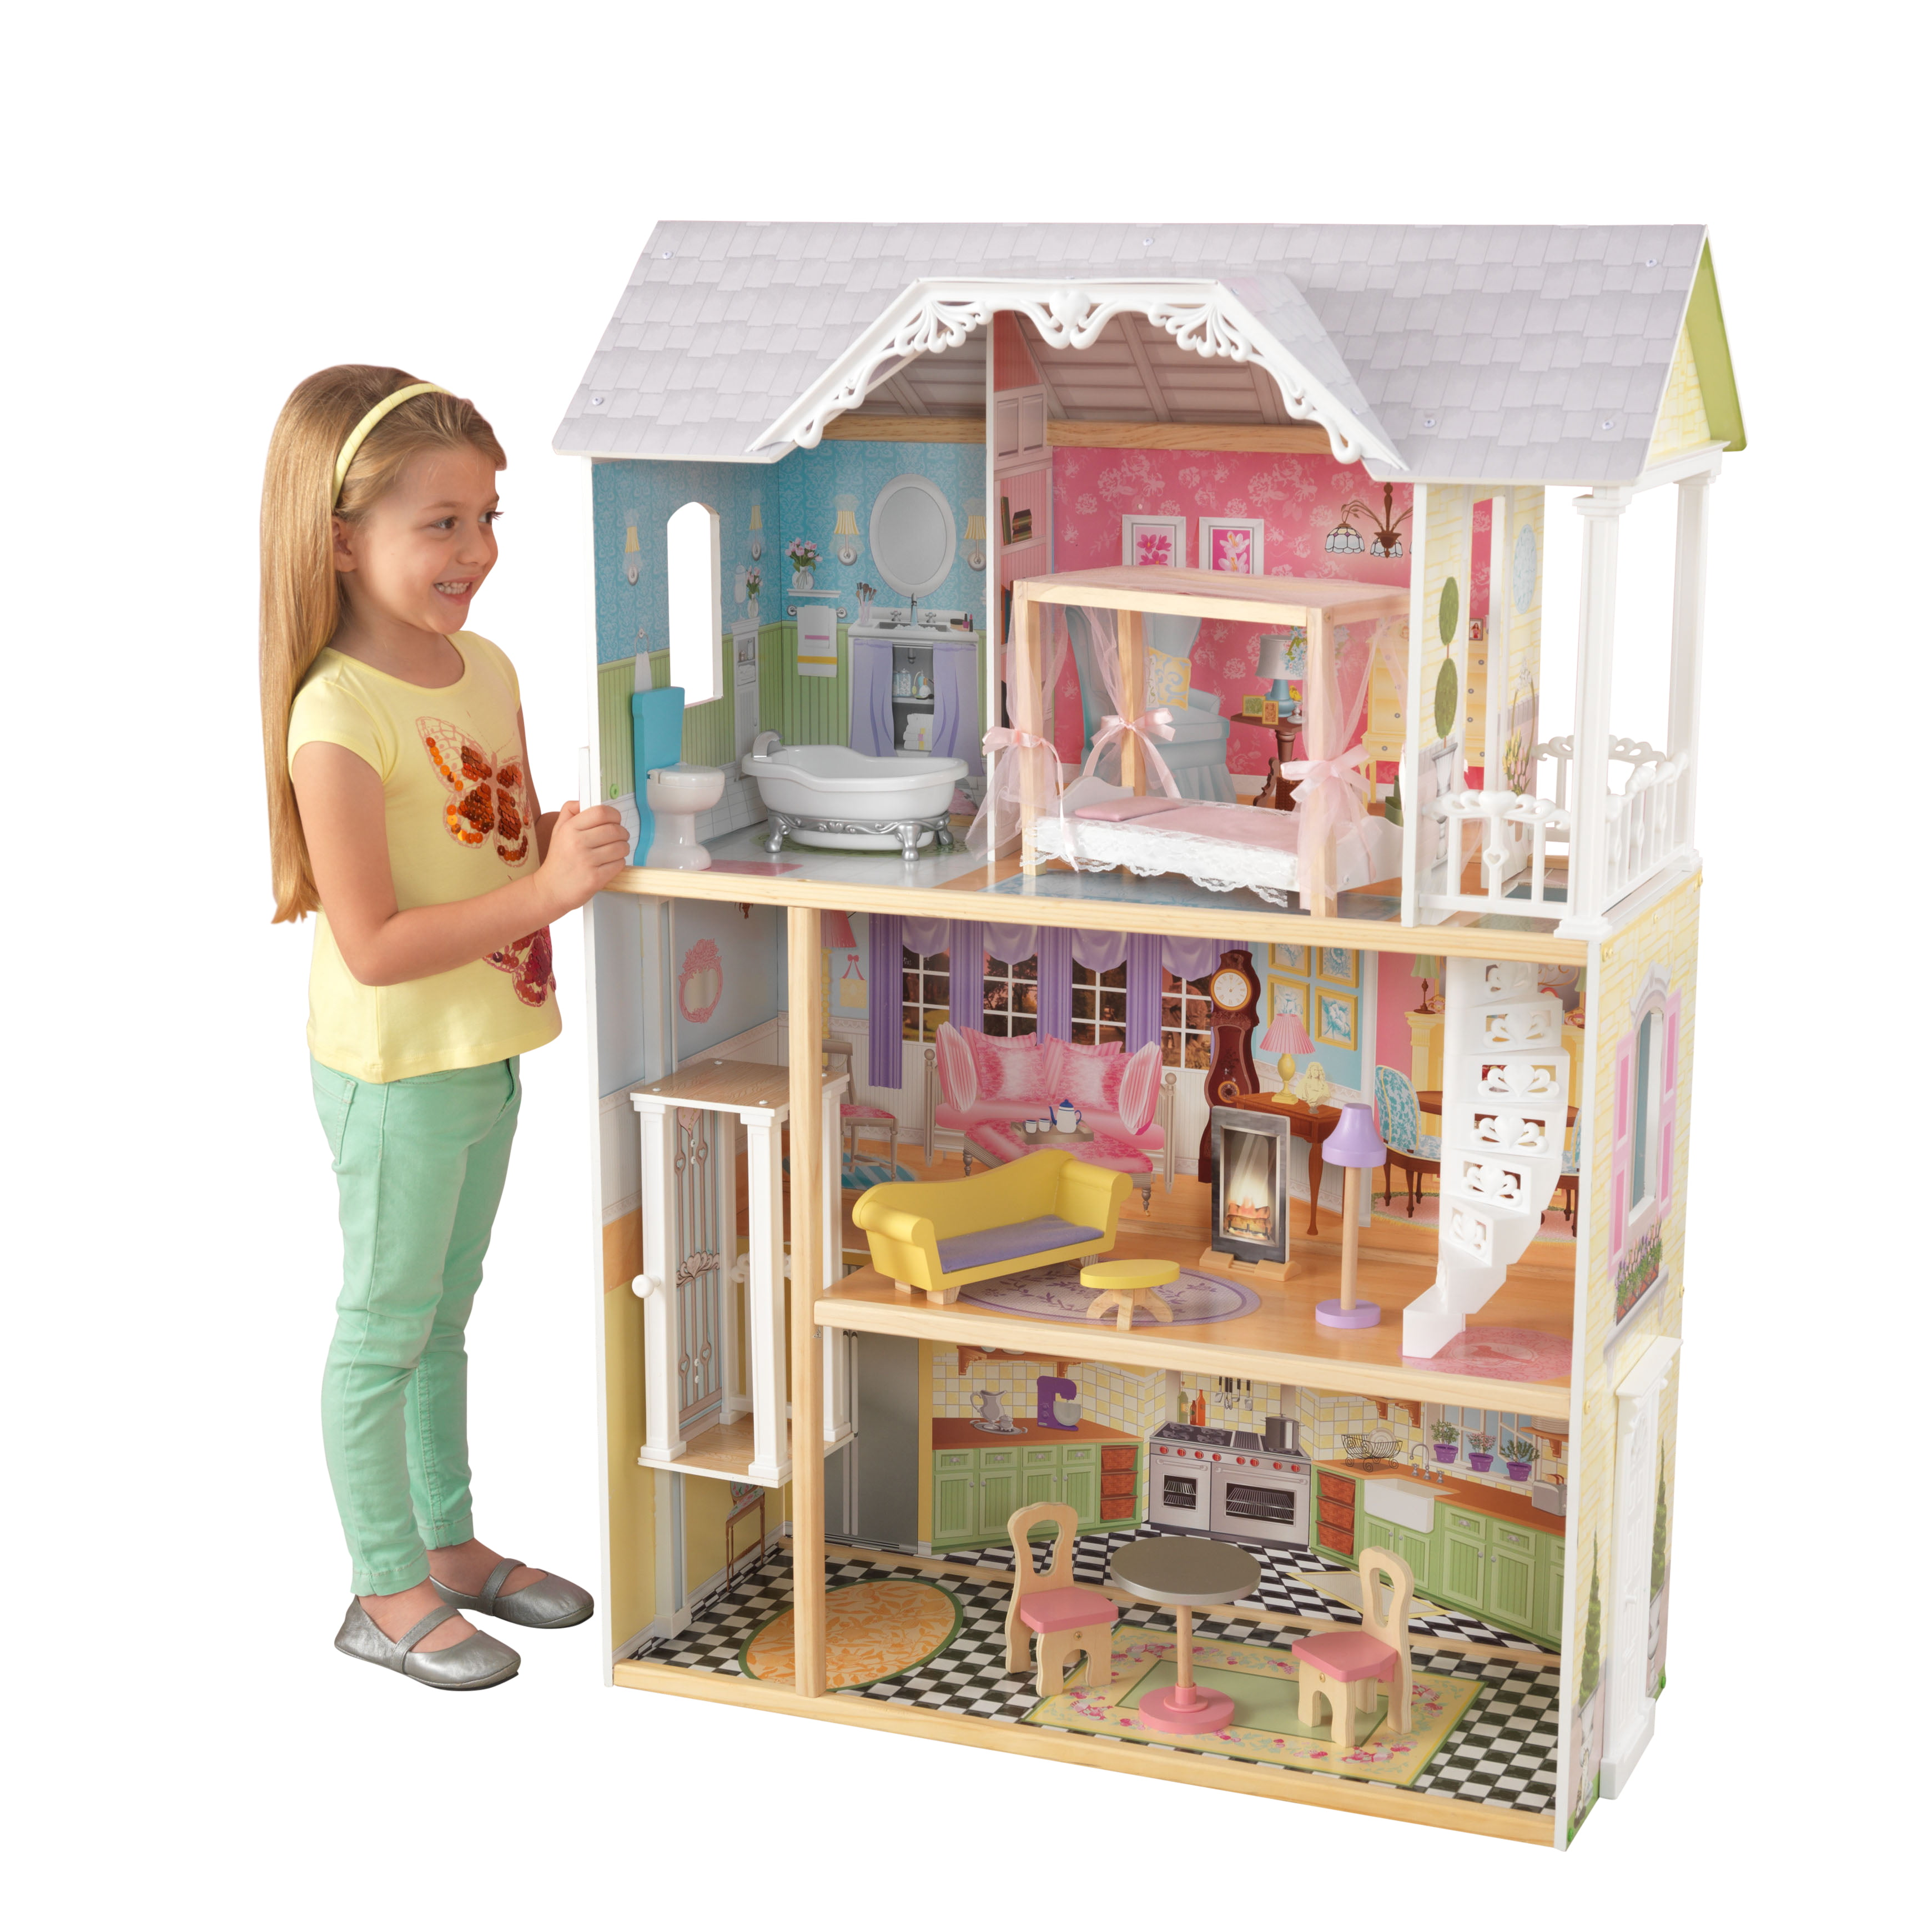 KidKraft Kaylee Dollhouse with 10 accessories included by KidKraft